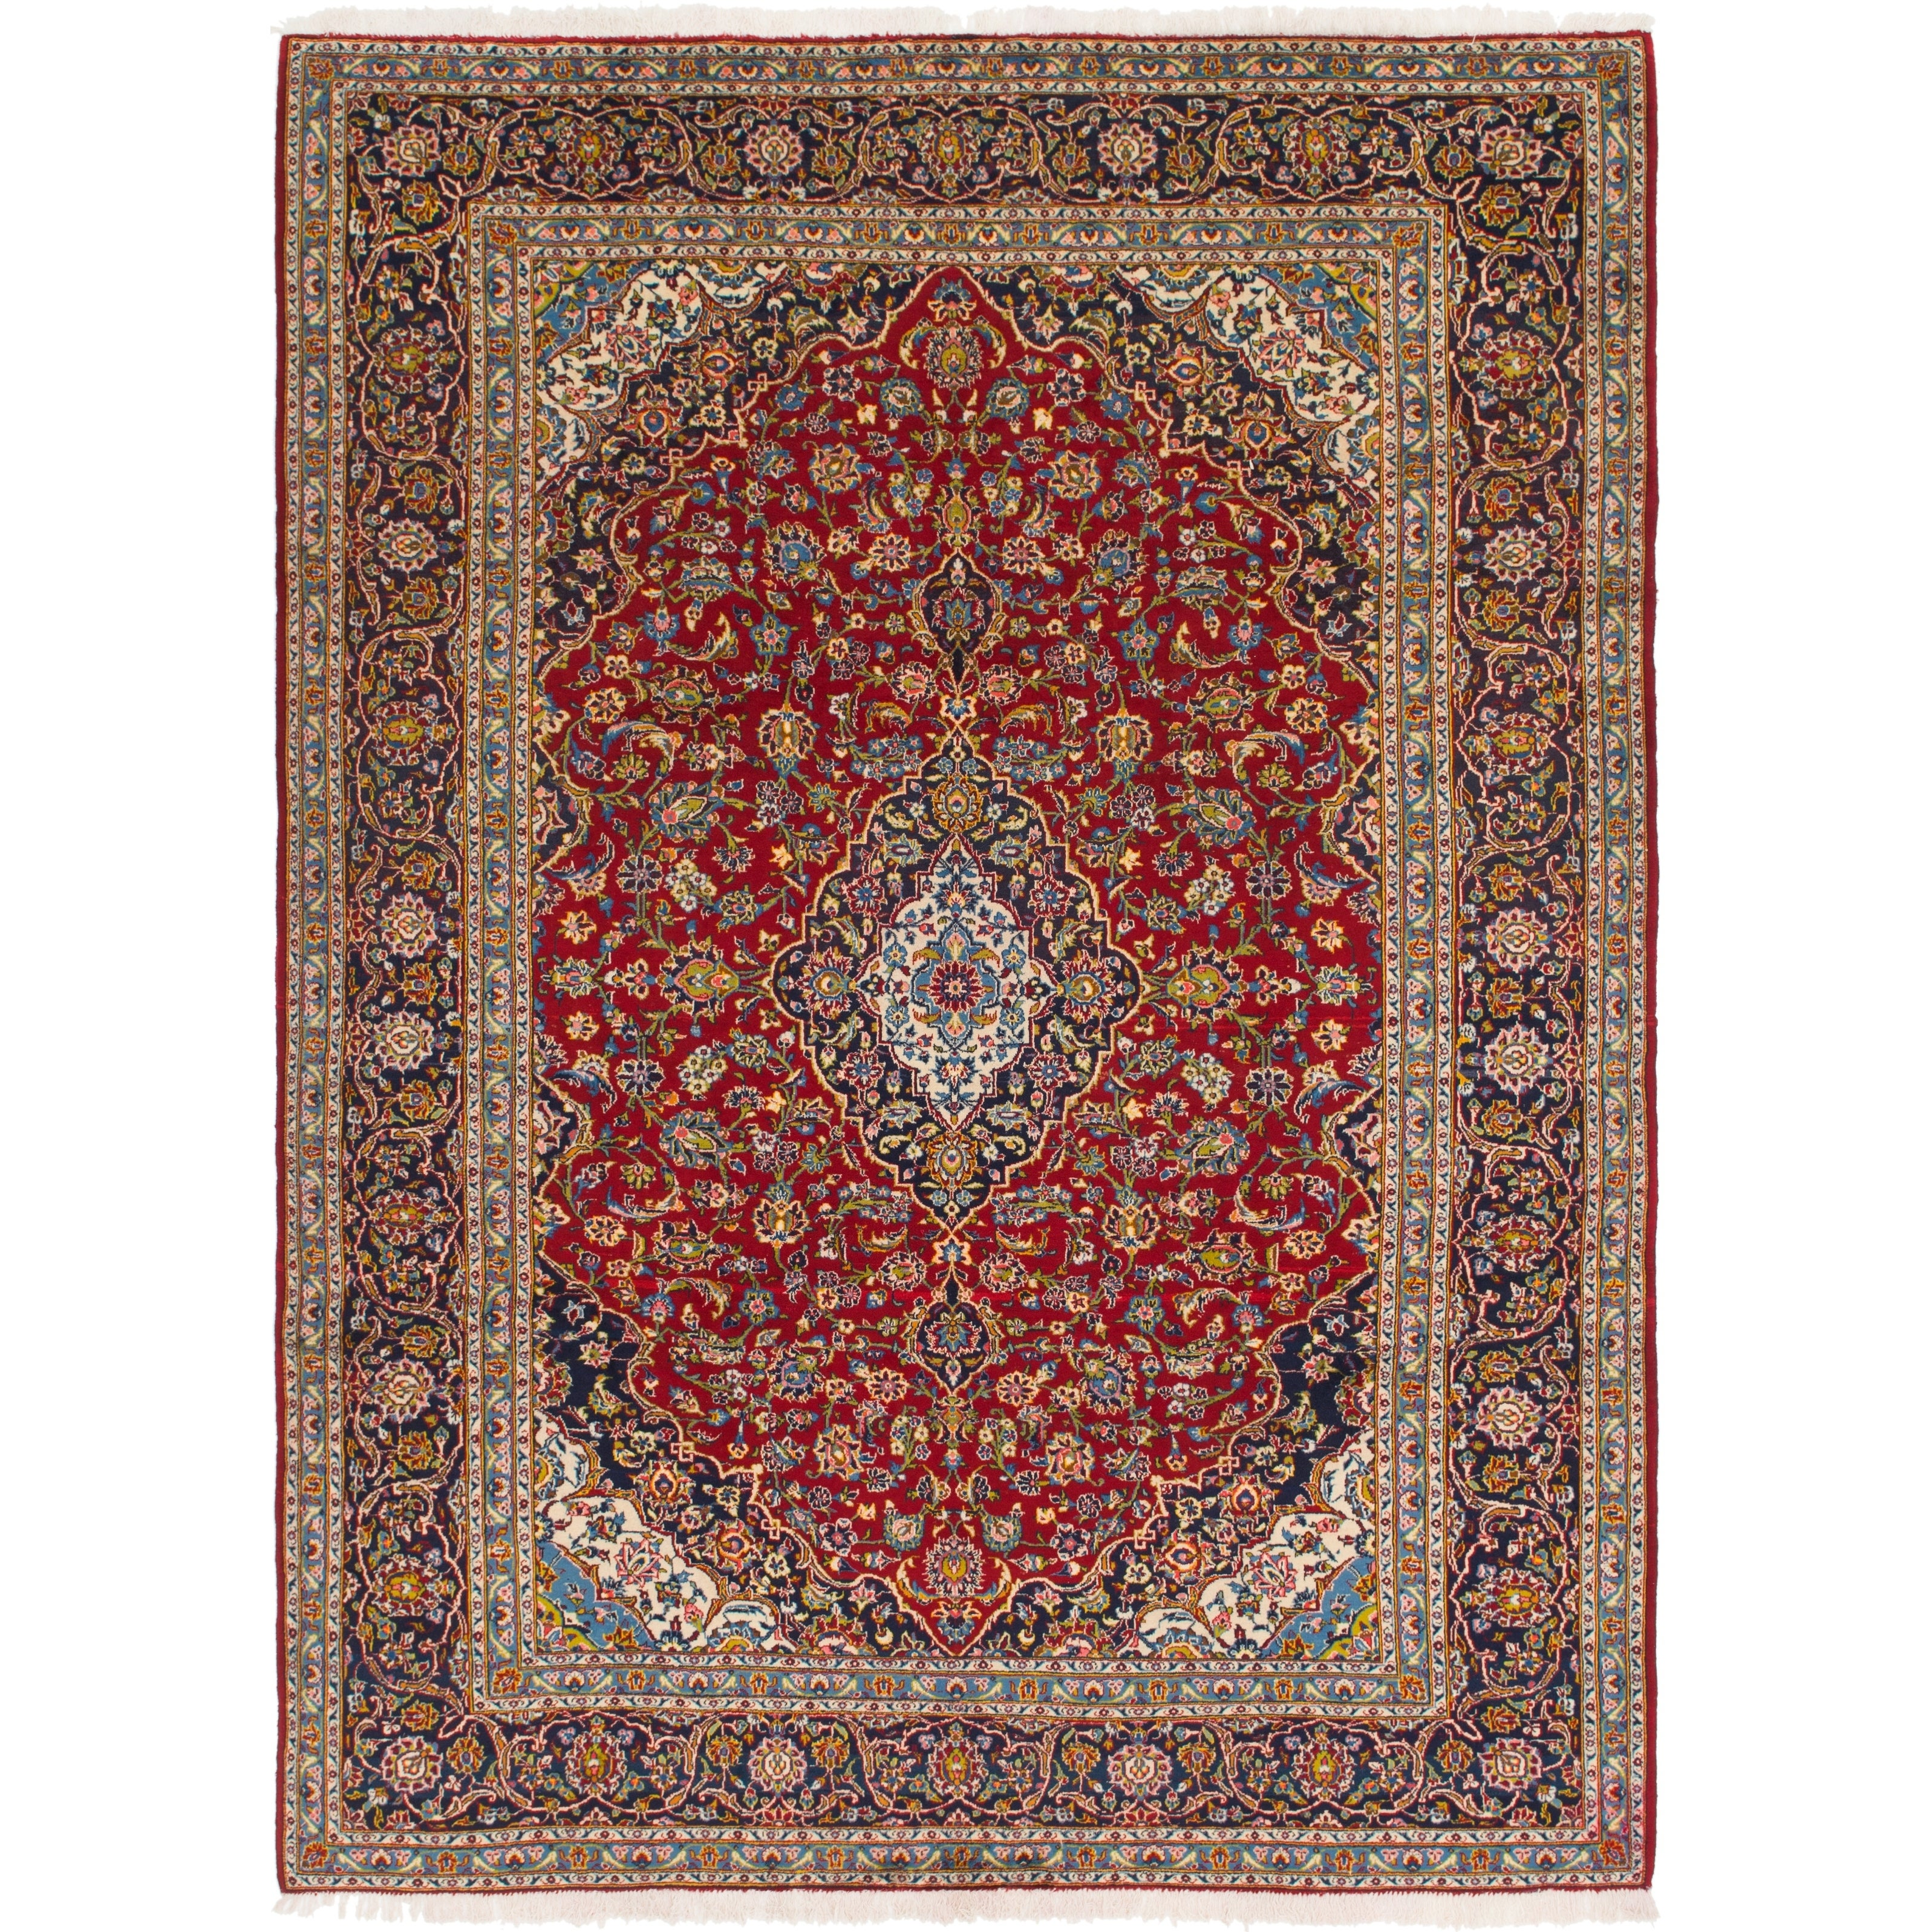 Hand Knotted Kashan Semi Antique Wool Area Rug - 9 2 x 12 8 (Red - 9 2 x 12 8)